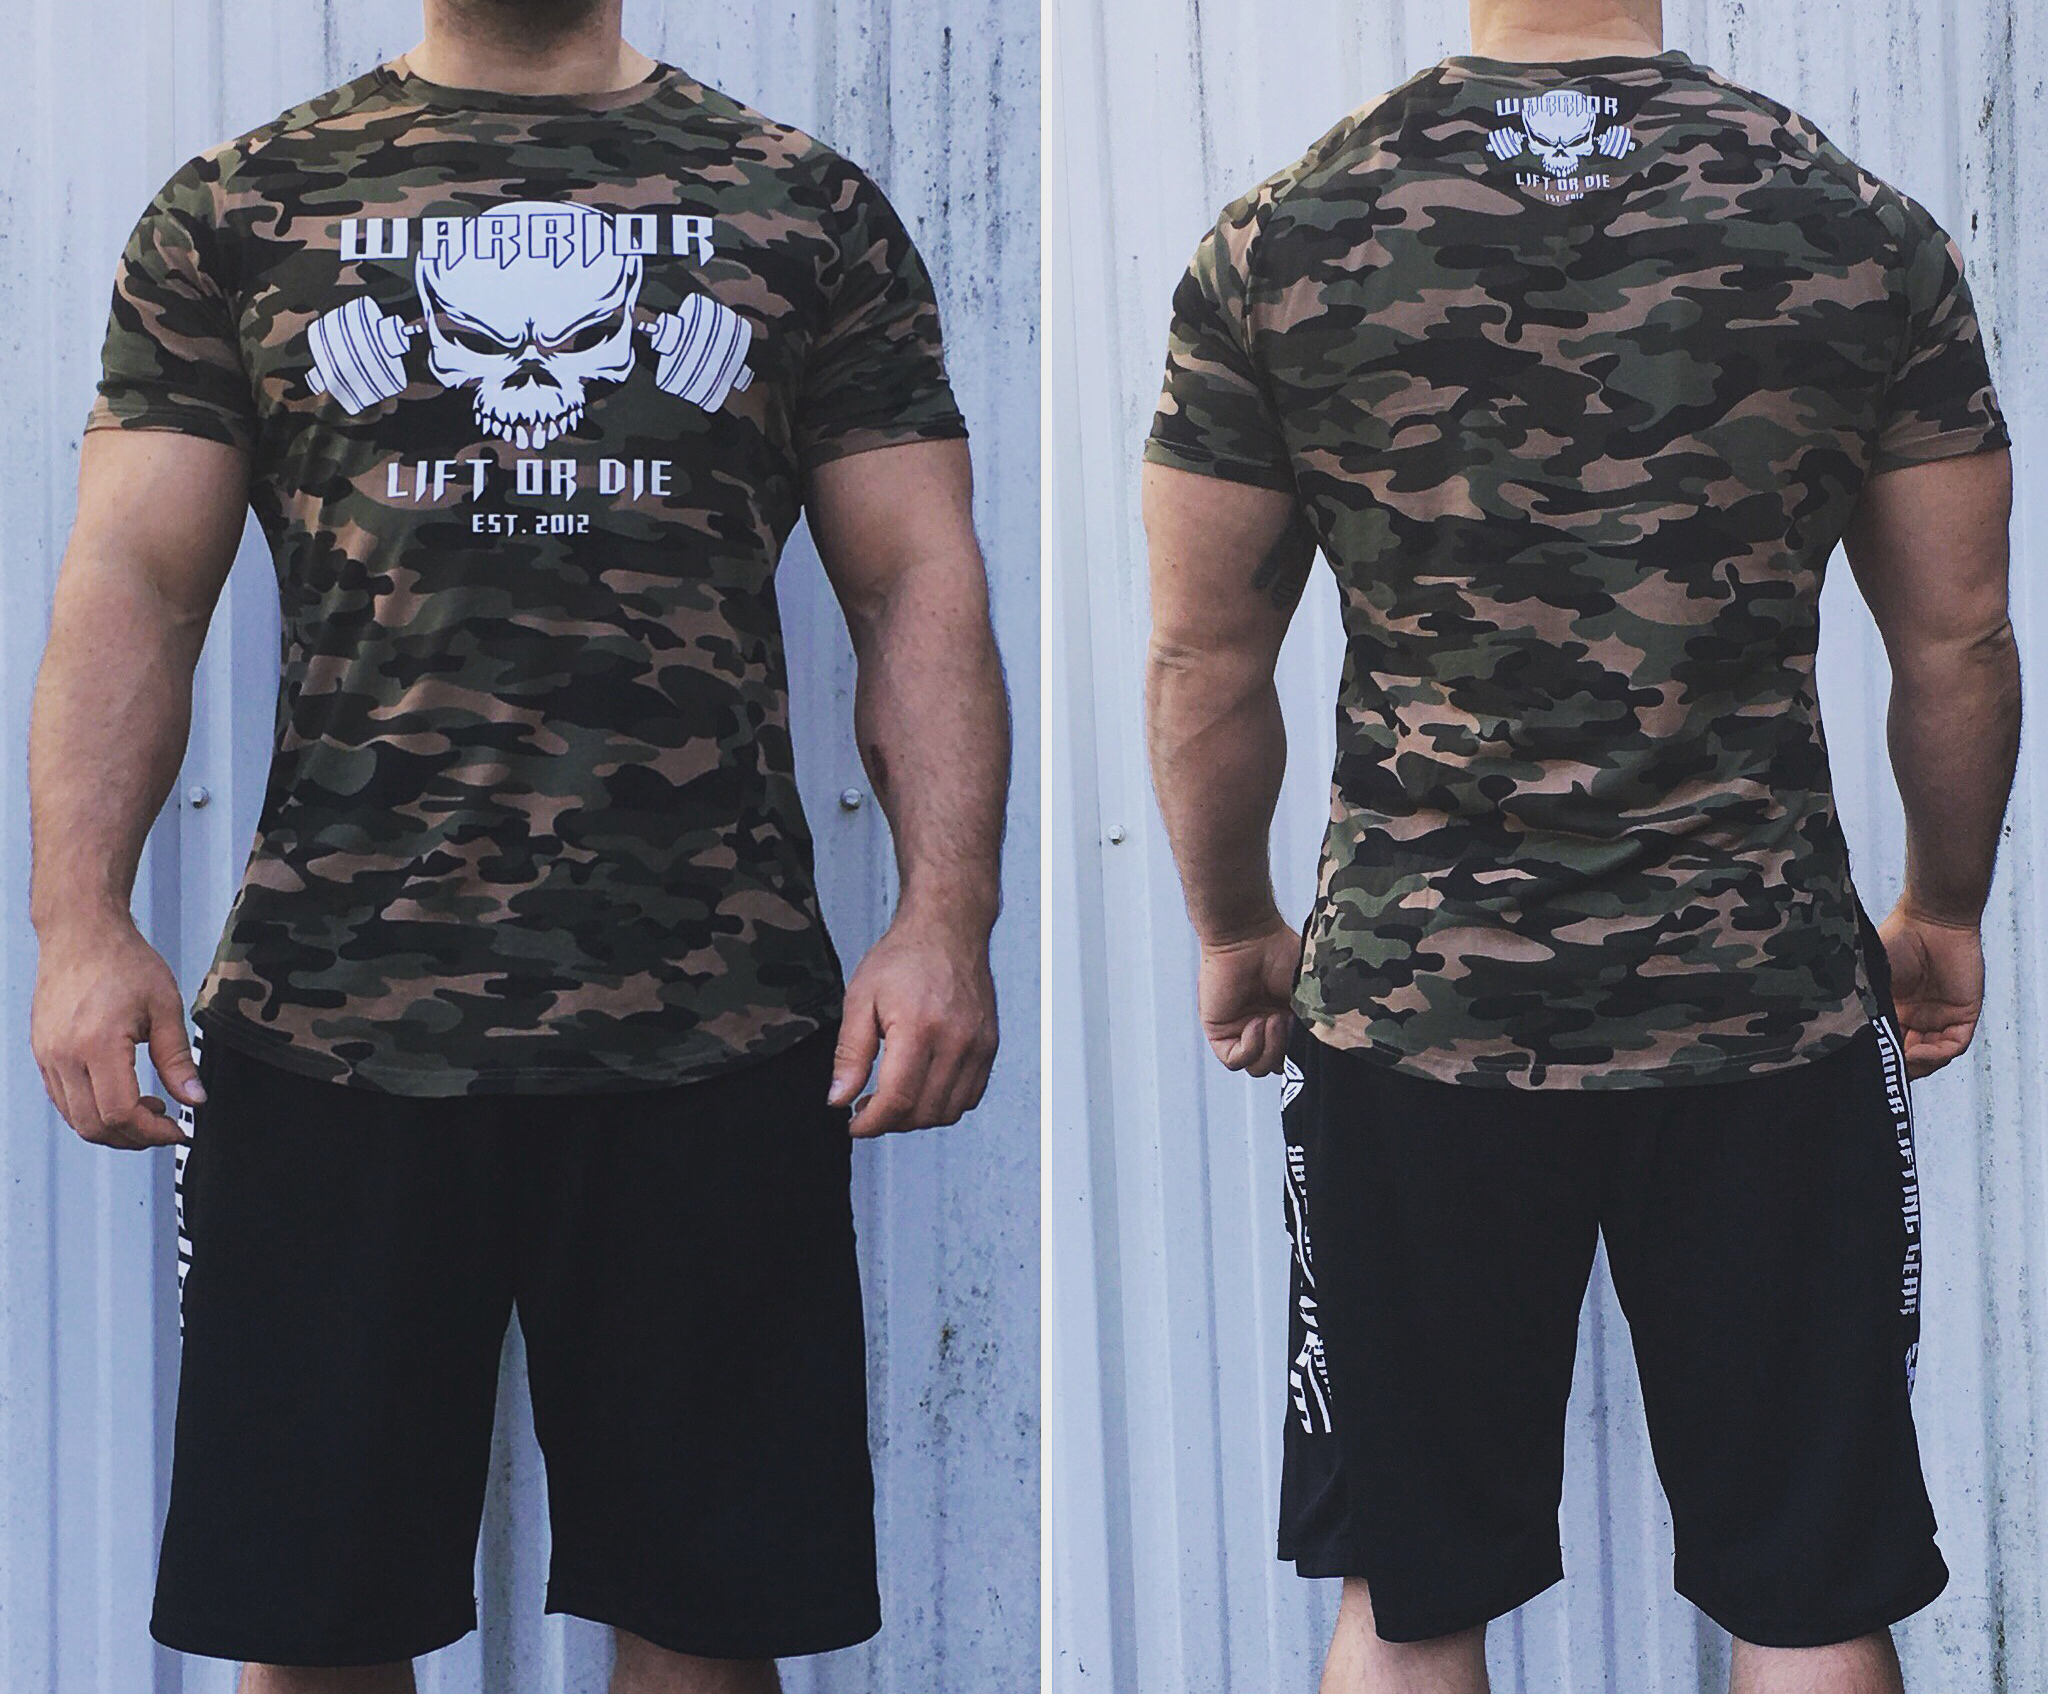 t shirt camouflage warrior lift or die en lastane pour les adaptes de la musculation. Black Bedroom Furniture Sets. Home Design Ideas